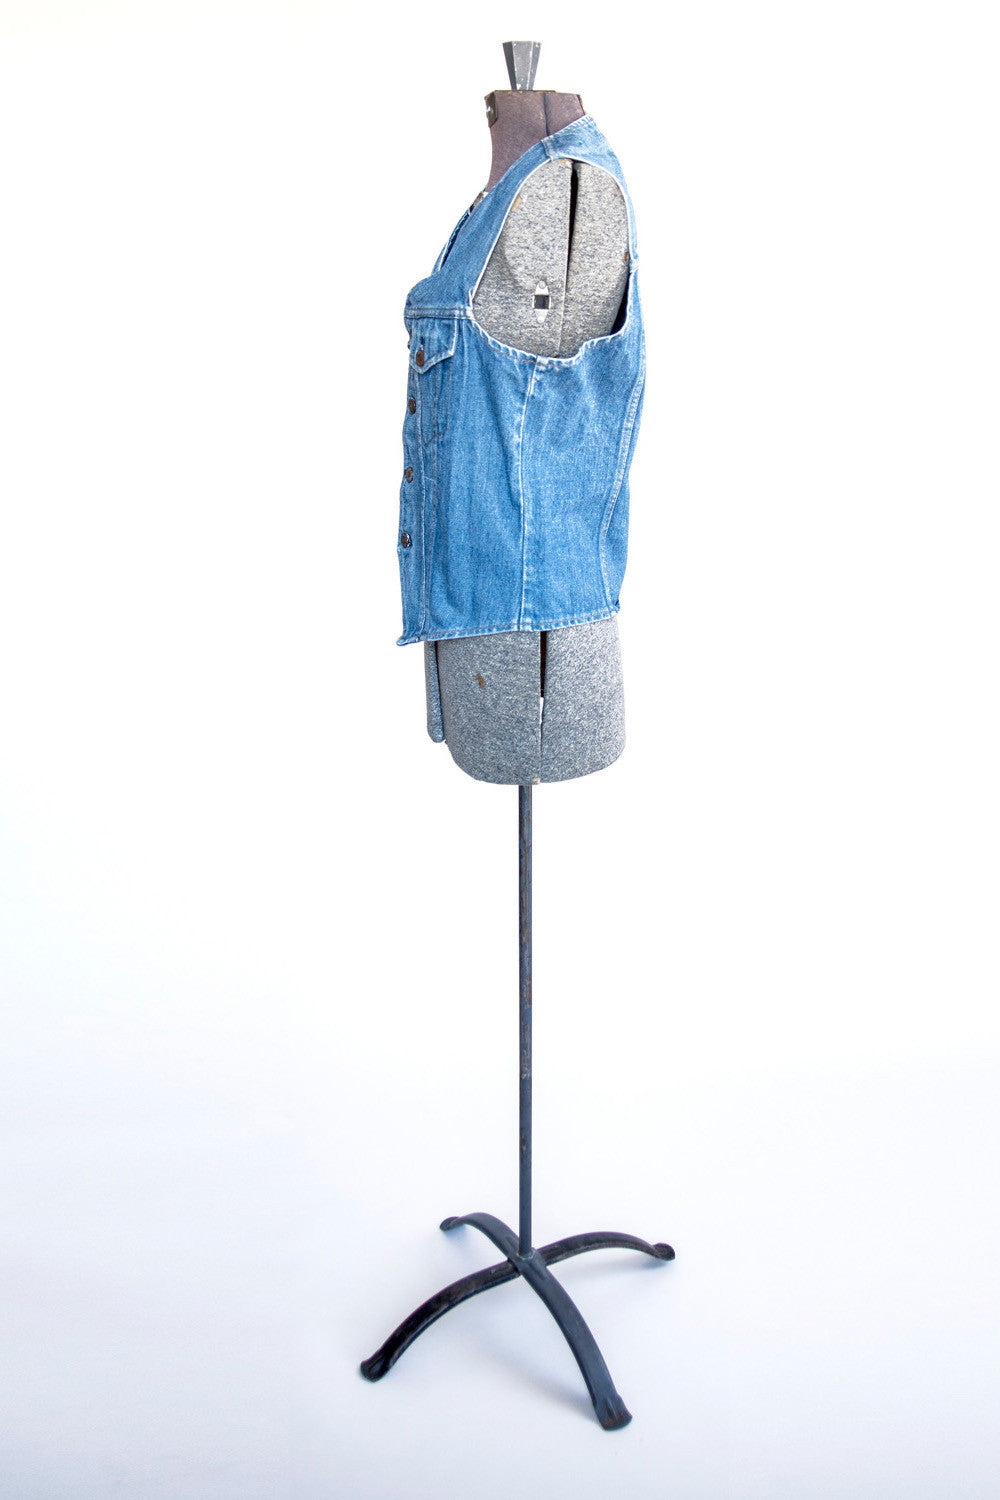 Medium Wash 70s Vest - Women's Vintage Denim Vest